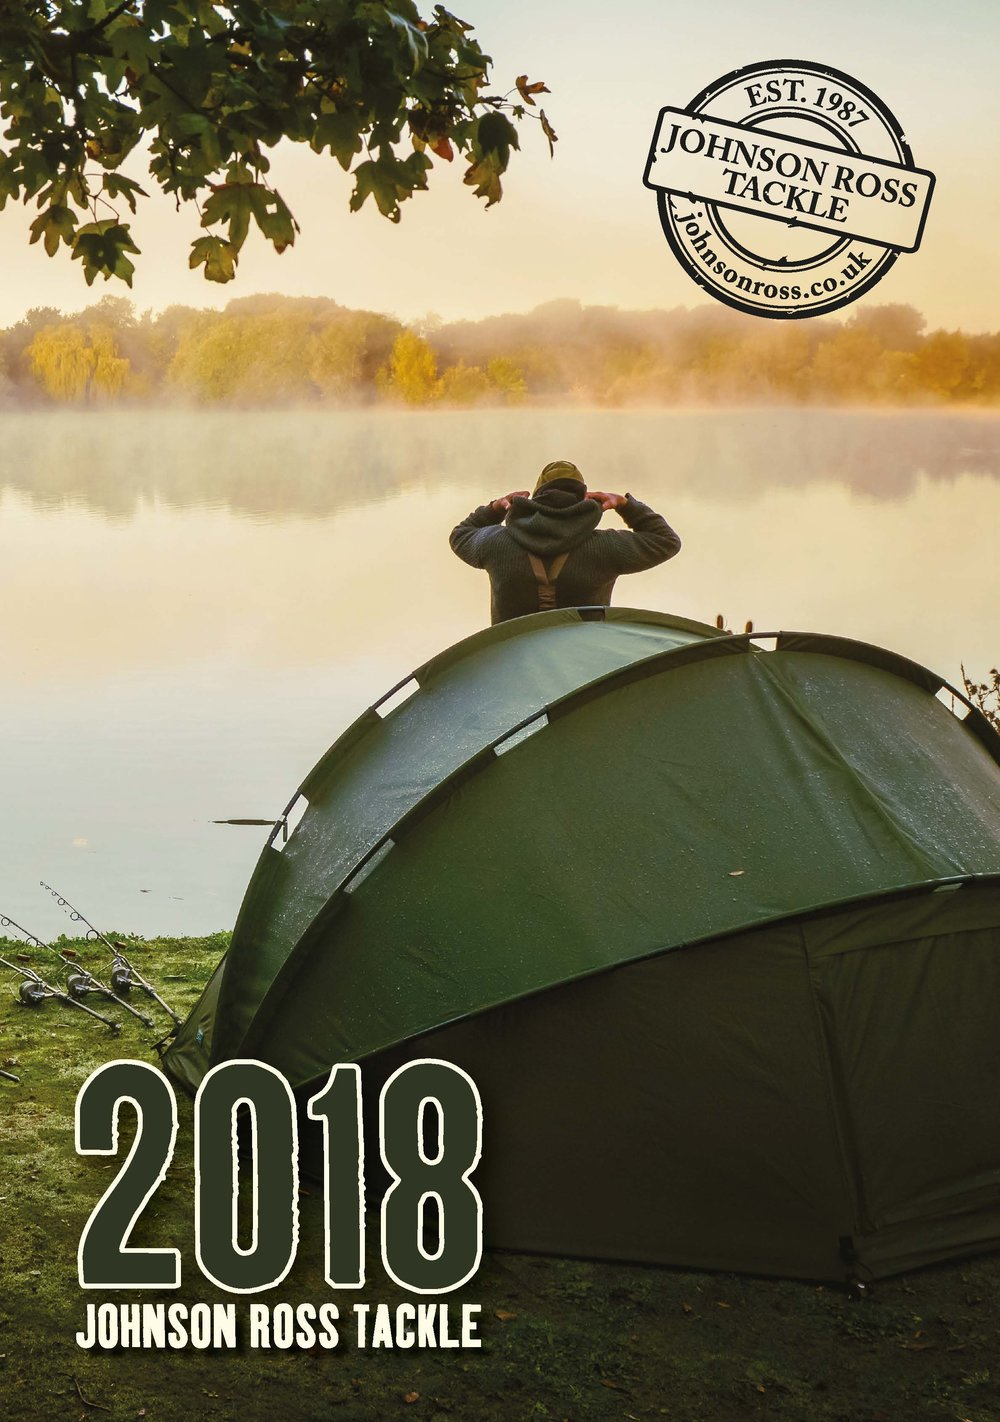 Johnson Ross 2018 Tackle Catalogue Cover.jpg